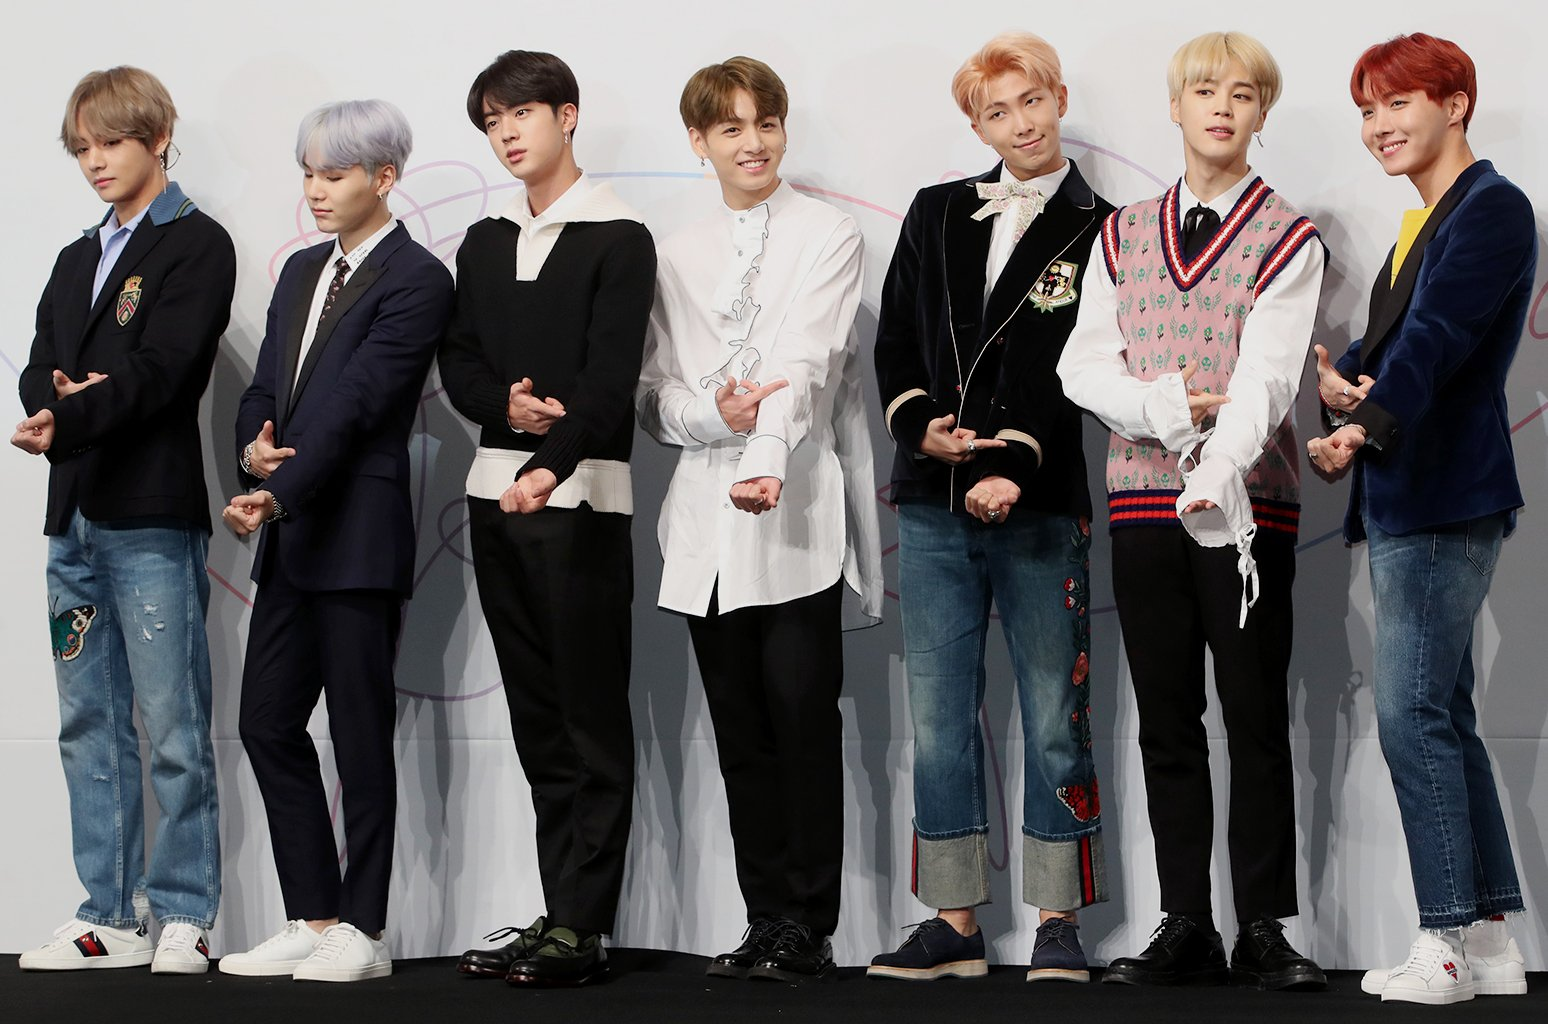 BTS announce new full-length album 'Love Yourself: Tear' to be released in May https://t.co/ItSfrIBO15 https://t.co/82Jg318wG6